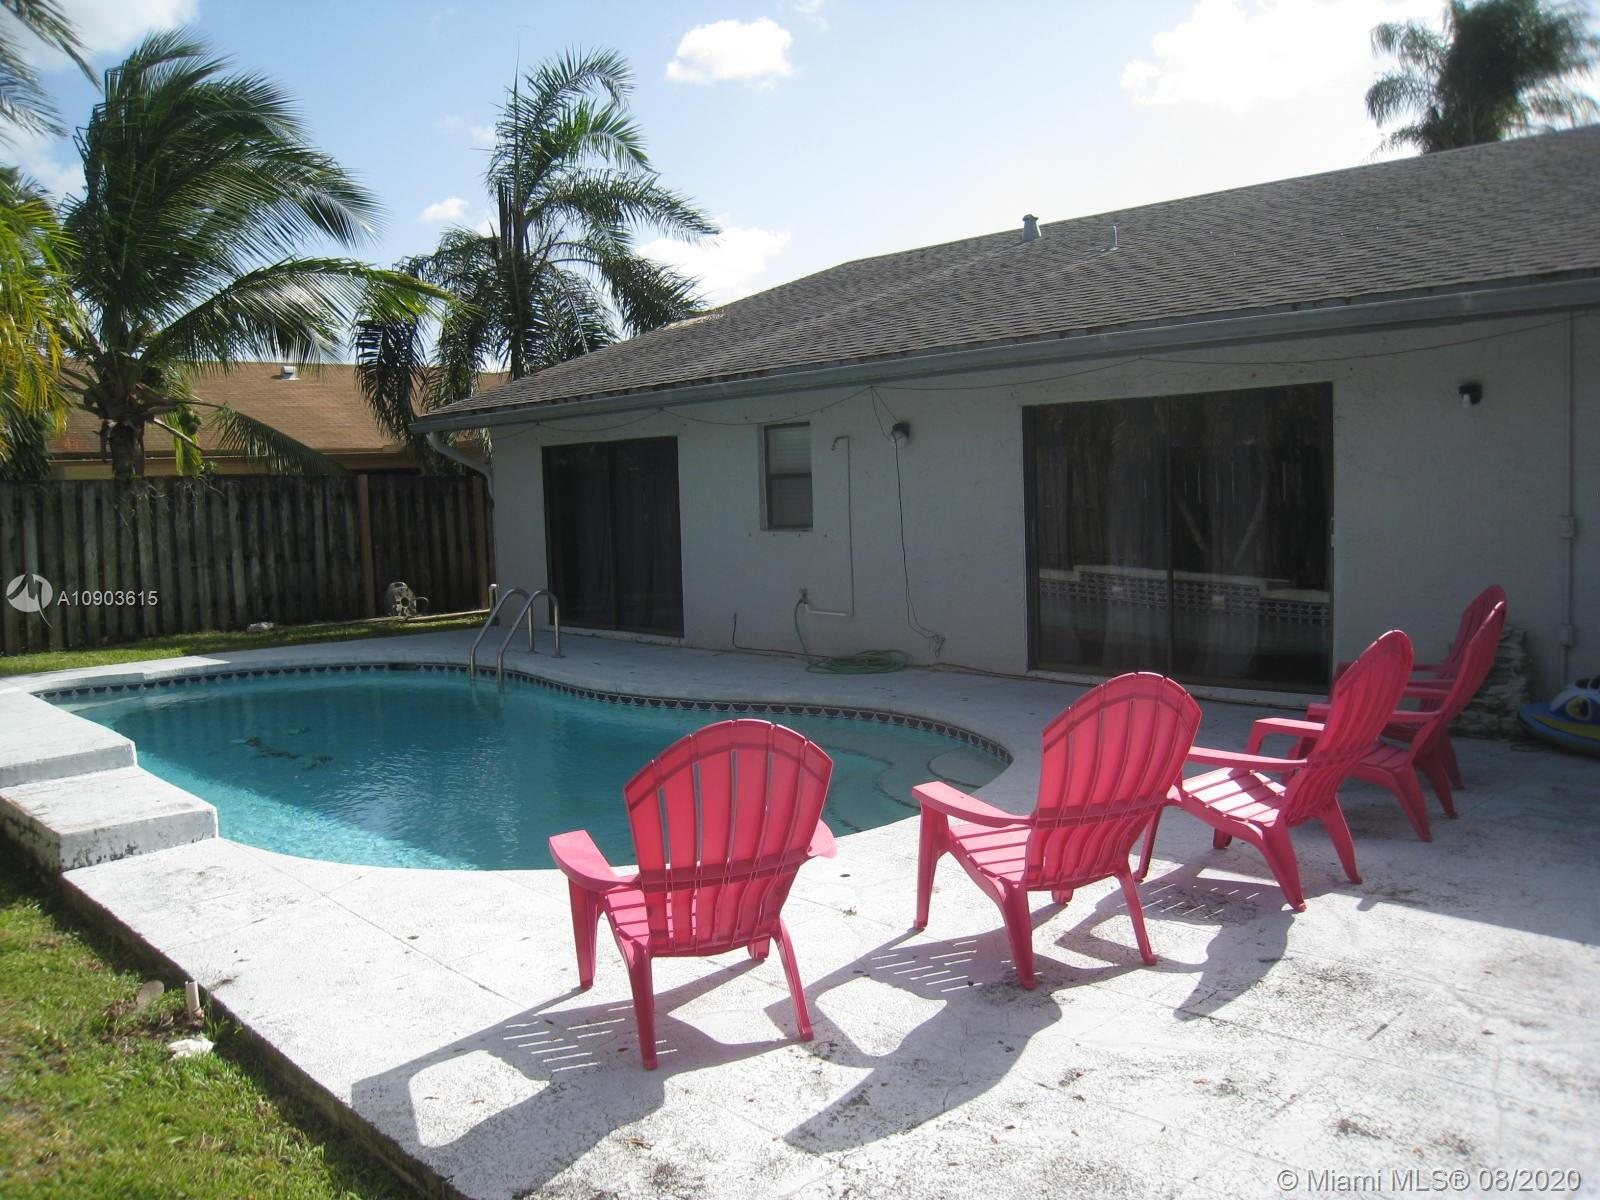 Welleby - 4356 NW 103rd Ave, Sunrise, FL 33351